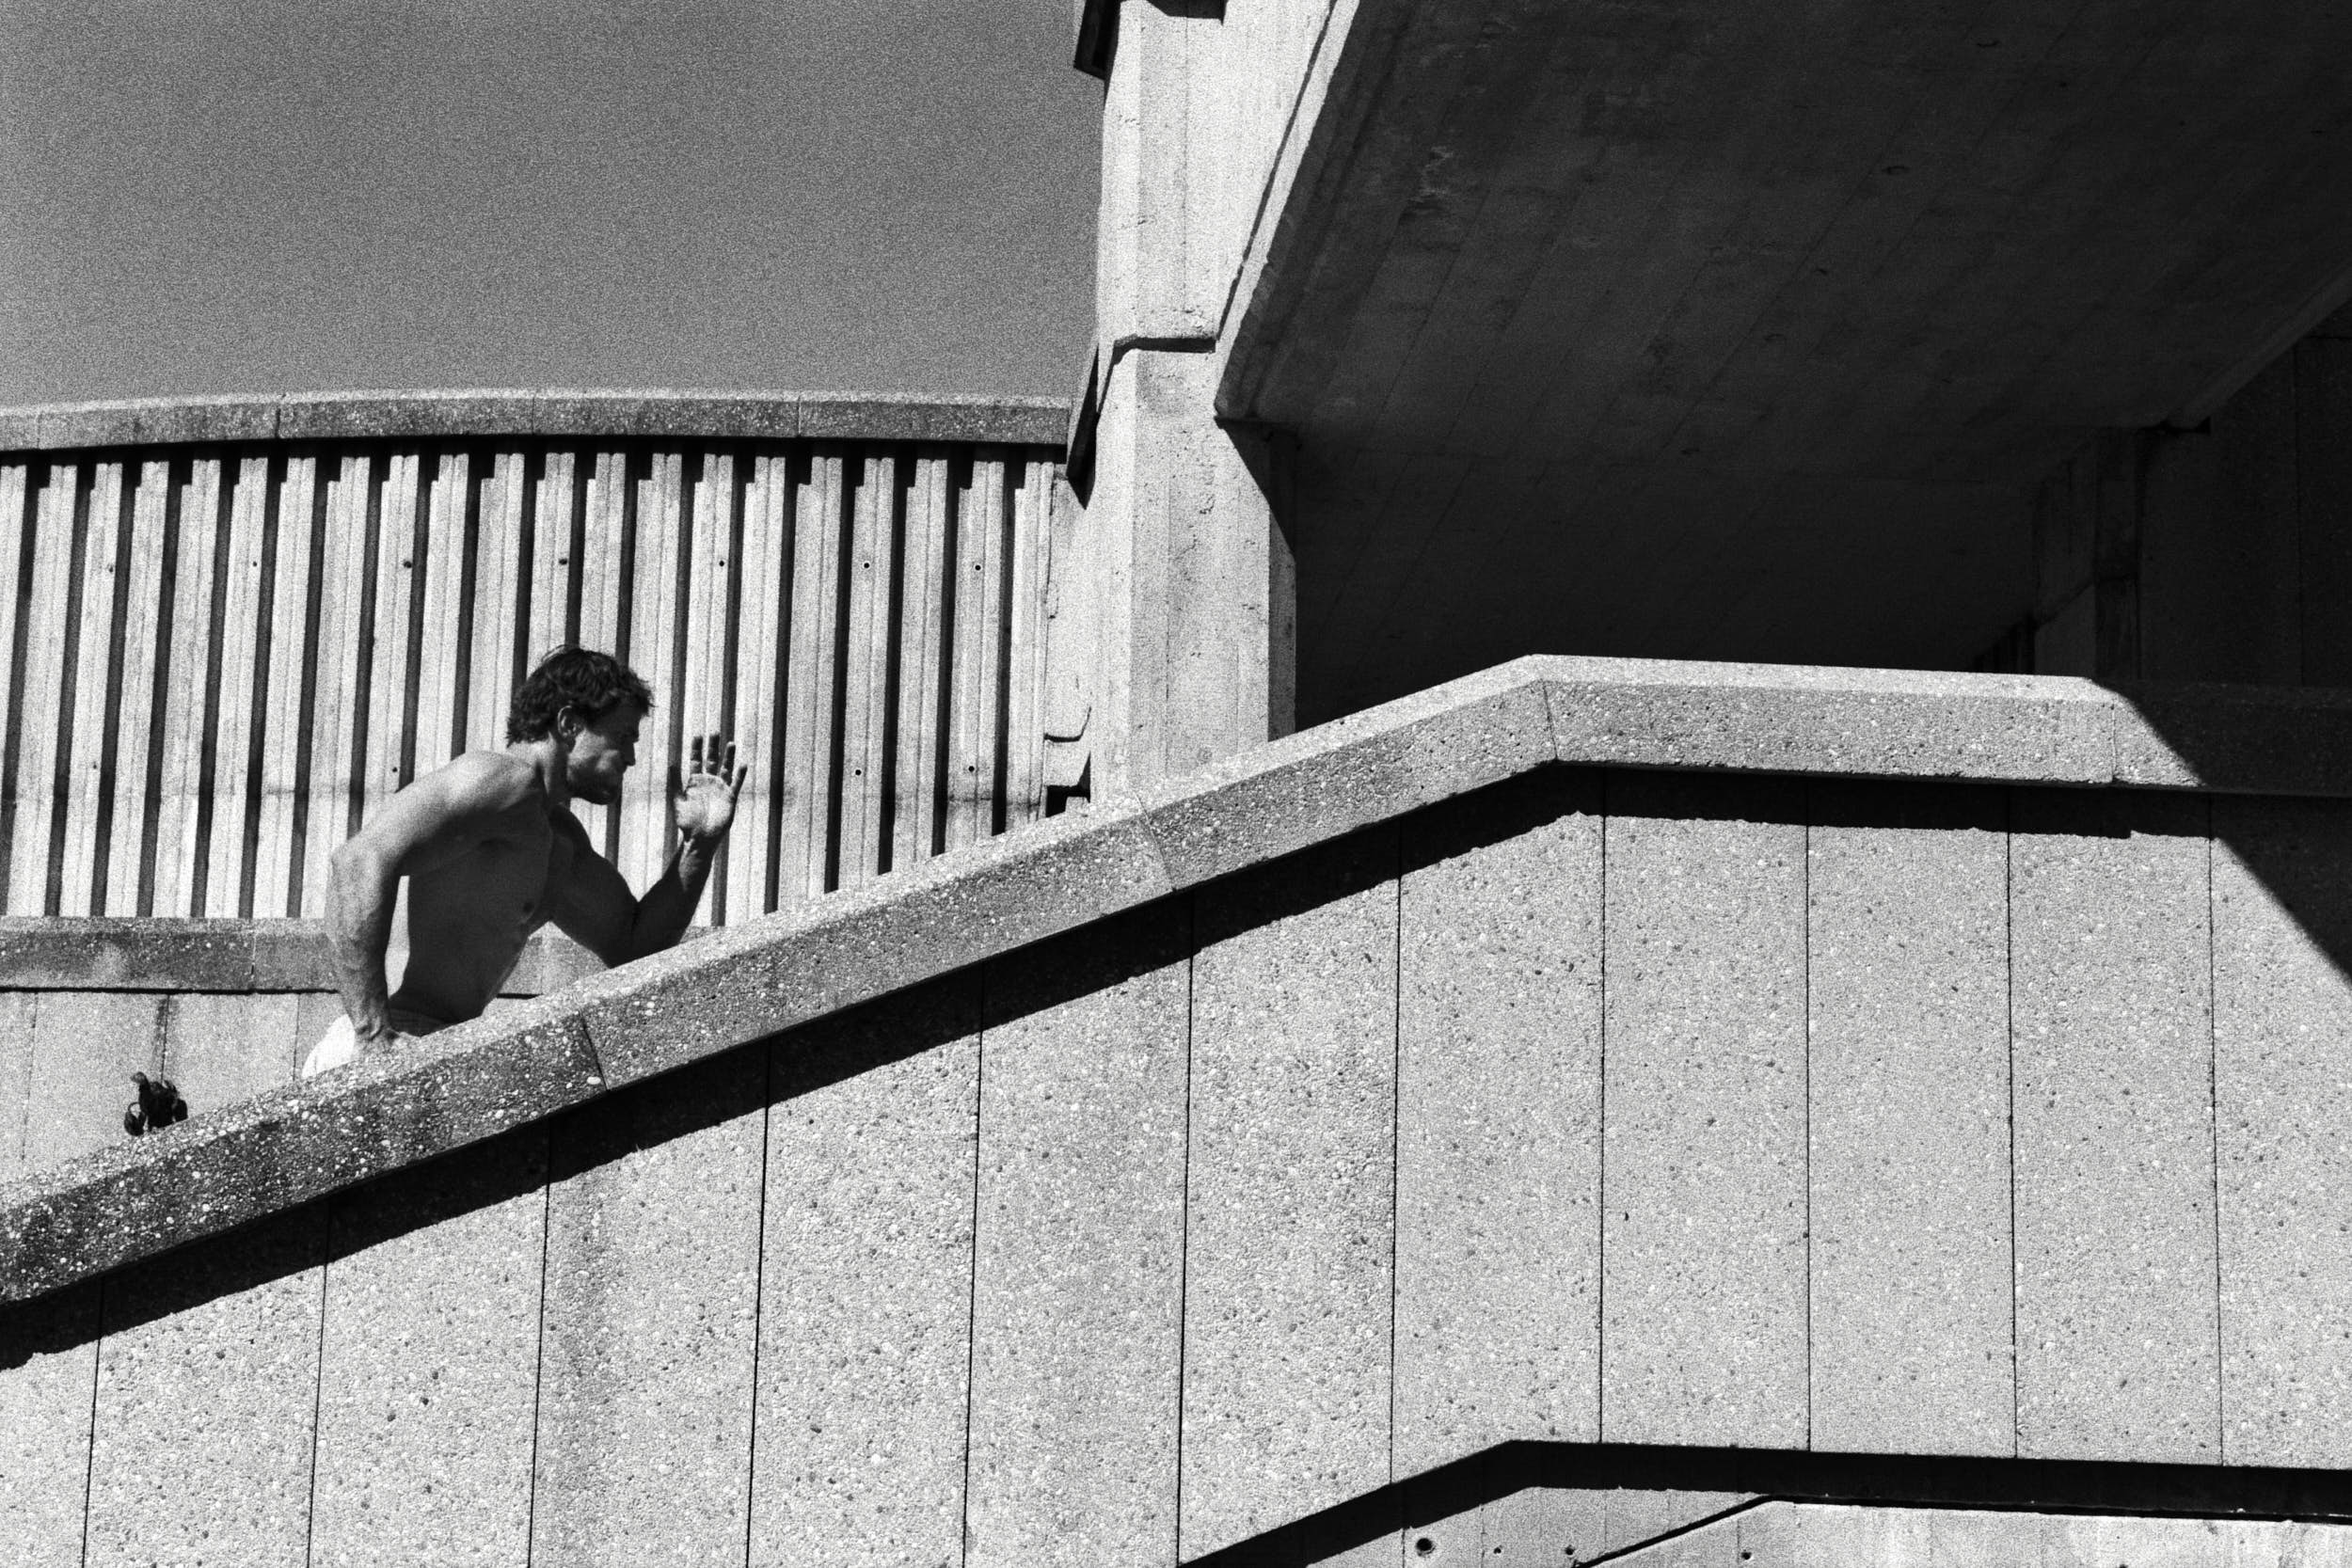 Athlete running up a concrete brutalist staircase.